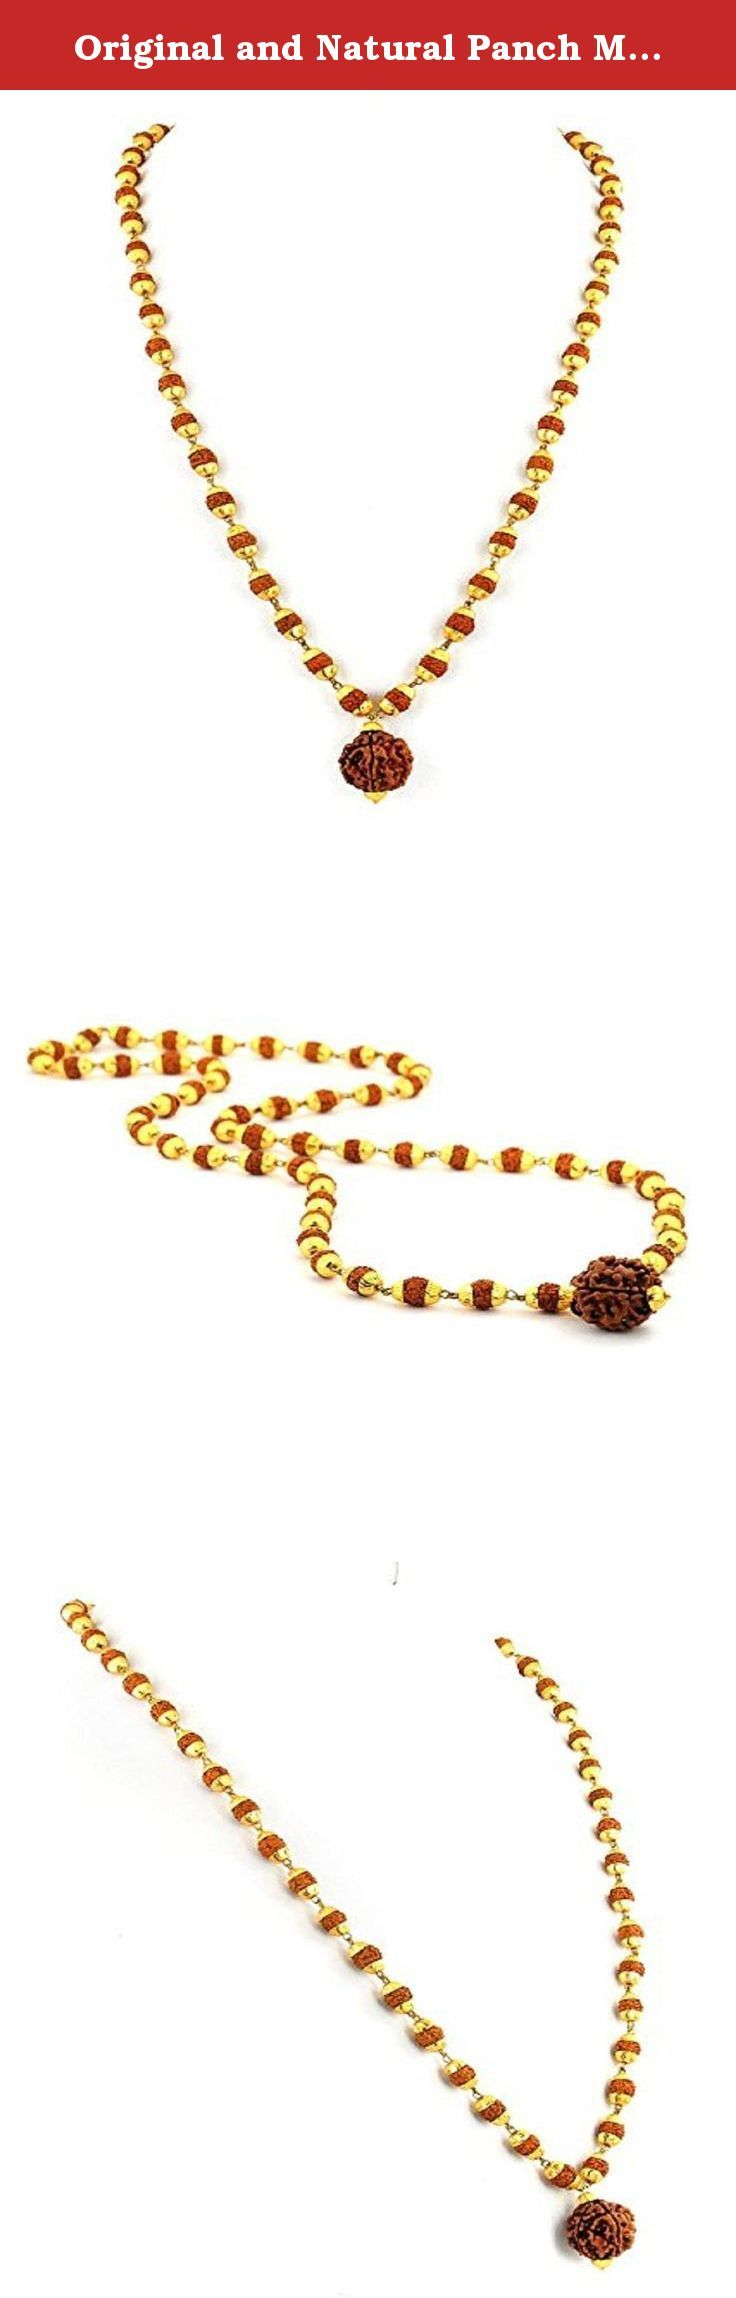 Original and Natural Panch Mukhi Rudraksha Mala. A Rudraksha represents Lord Shiva/ Rudra himself.It is said that it bestows all sorts of salvation & achievement of desired objects.Rudraksha is said to be rich with shakti and calms the kundalini, thus making it easier to rise.Rudraksha is said to open the heart chakra. Japa with Rudraksha mala yields many good results on human body and mind. This improves the blood circulation at eyes, mental nerves, pituitary and pineal and it prevents…